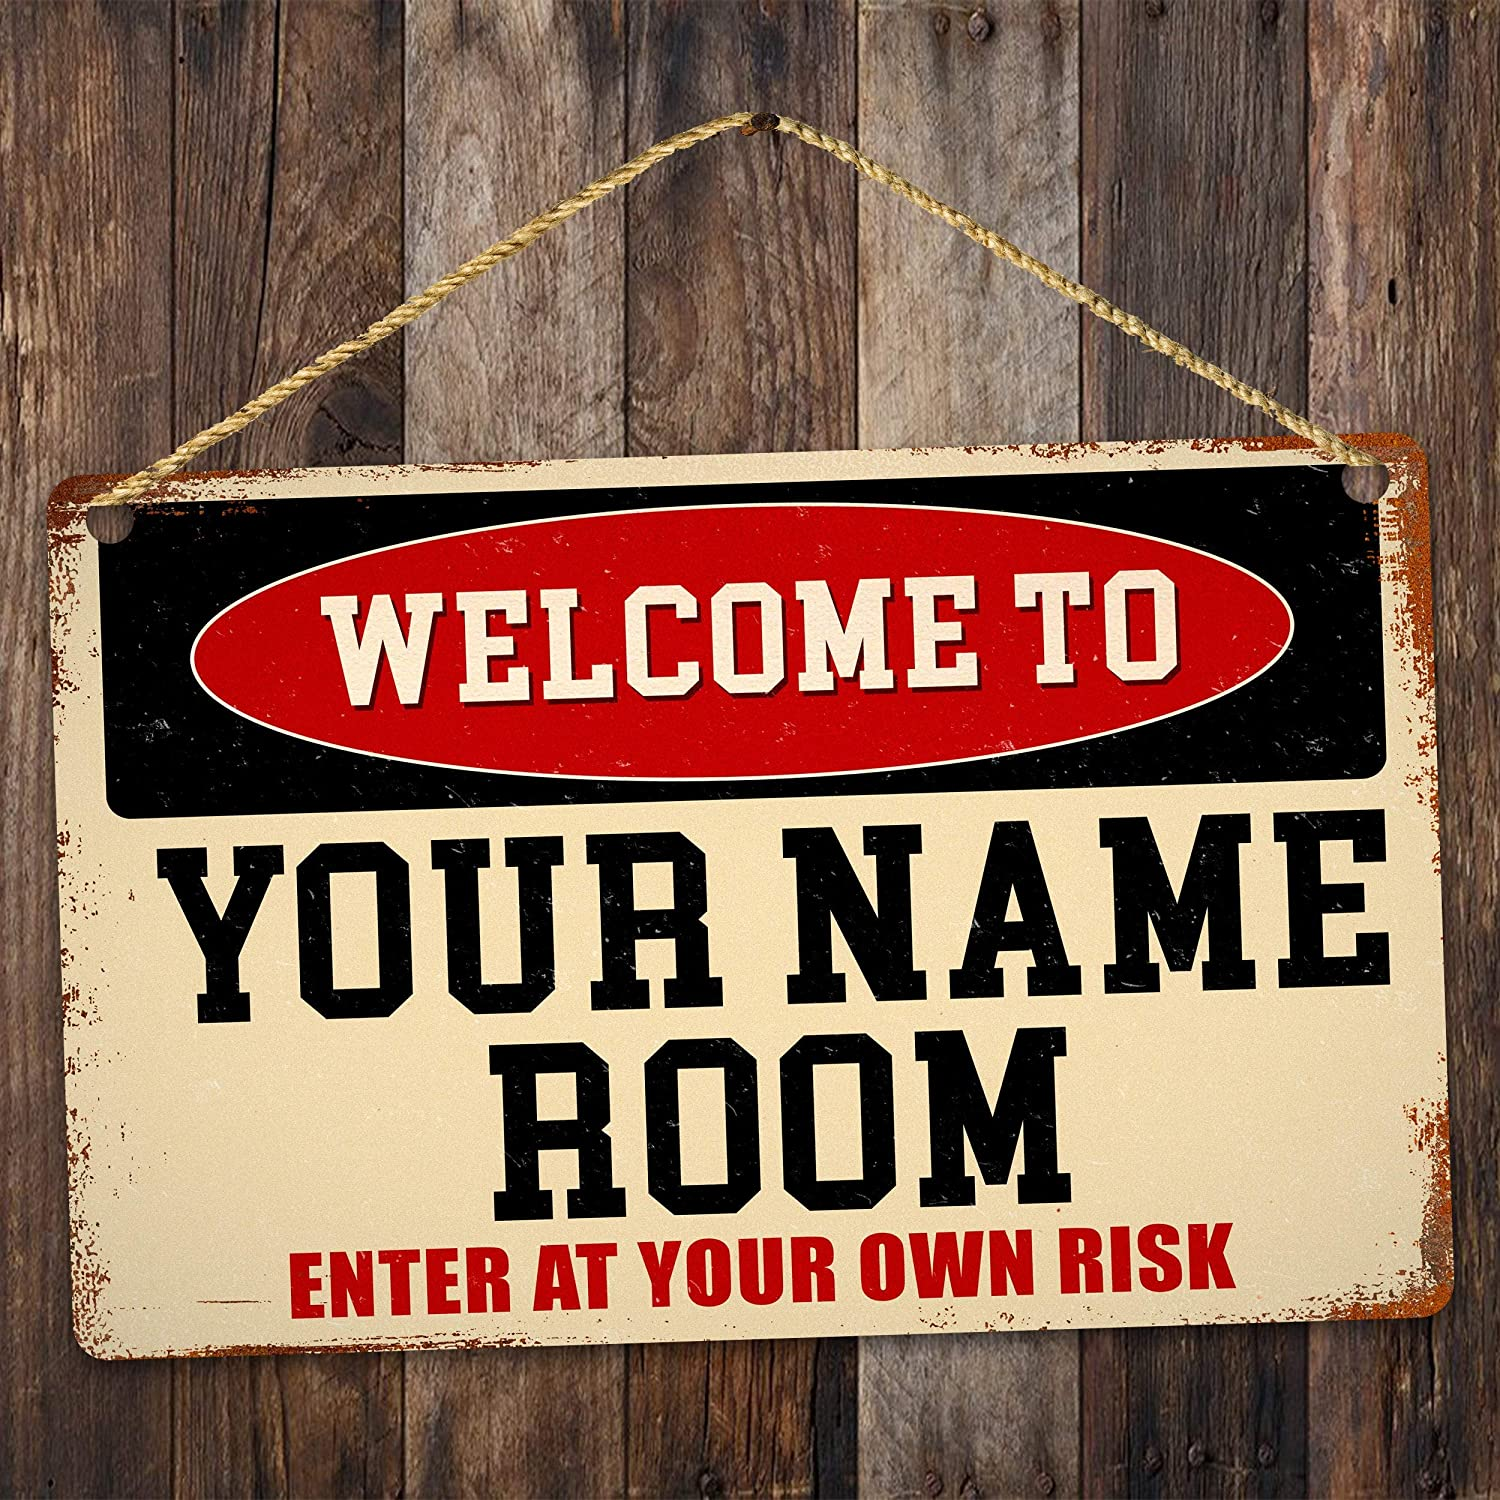 Welcome to Customized Name Room Accent Vintage - Durable Street Metal Sign Decor Personalized Outdoor Yard Garage Indicator Plaque Wall Printing Warning Display for Home Garden Lawn Alloy 7